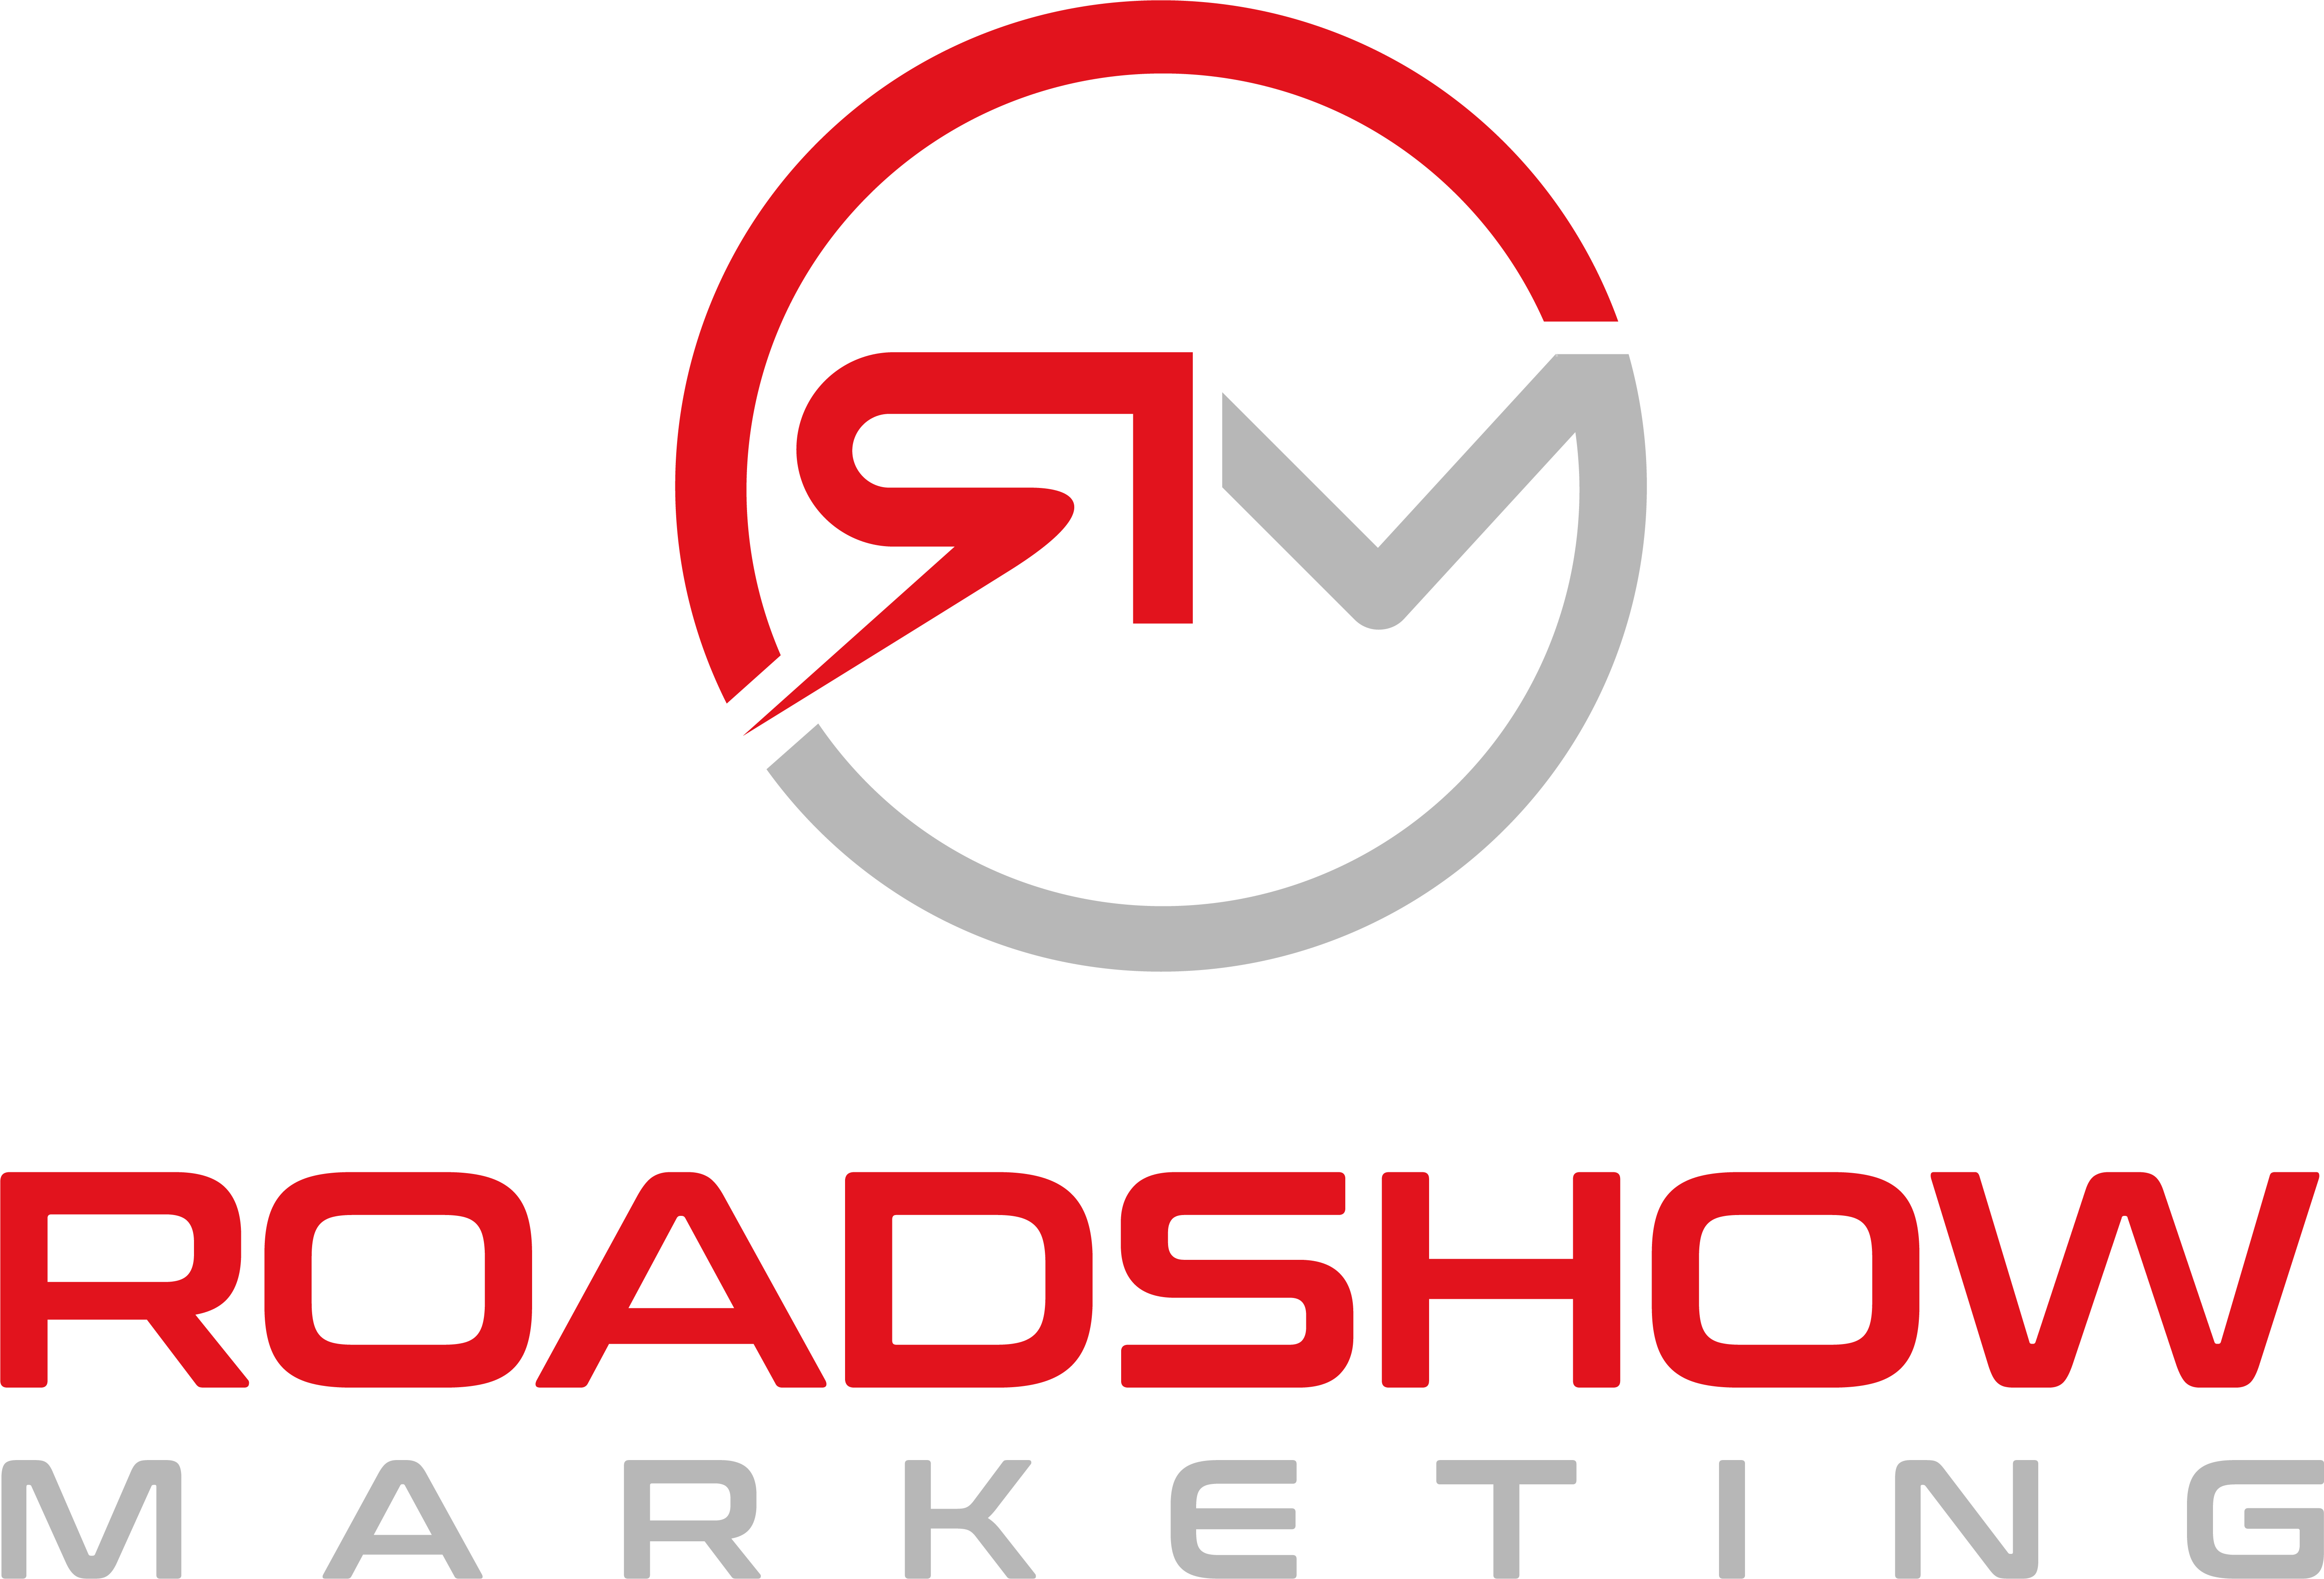 ROADSHOW-MARKETING